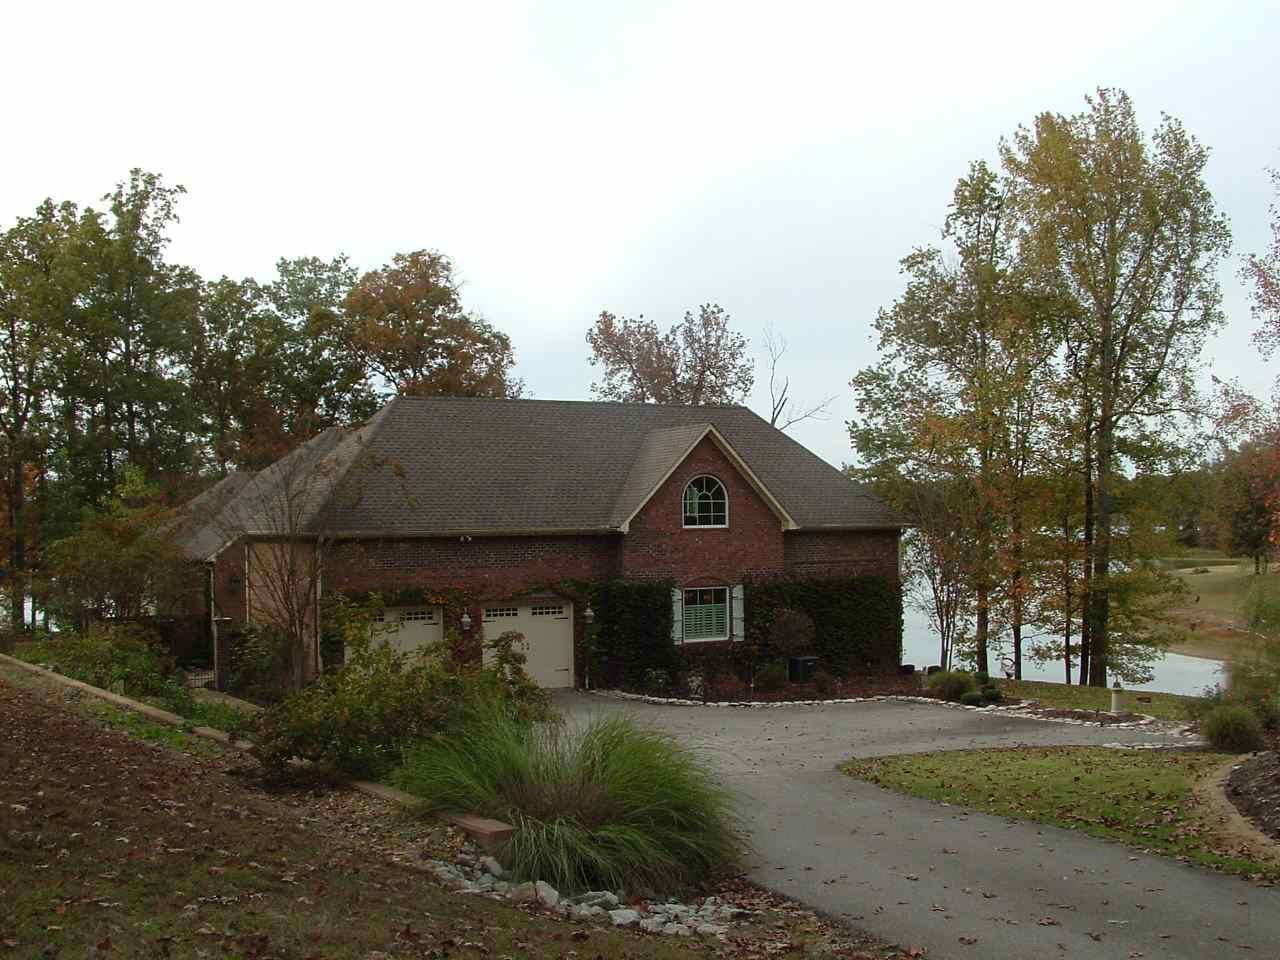 Beautiful home in trenton tn with images house styles